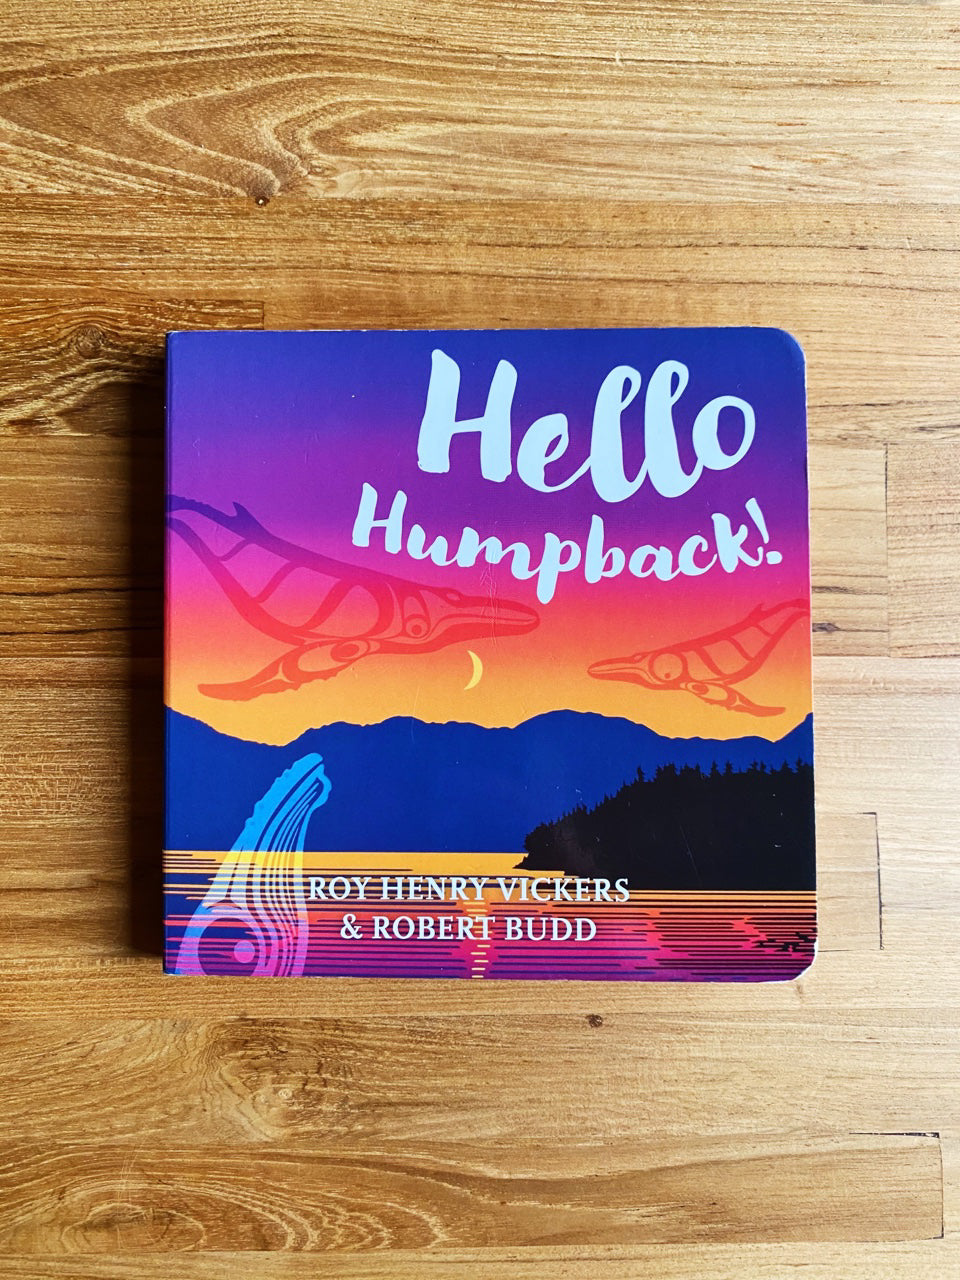 Hello Humpback! by Roy Henry Vickers & Robert Budd